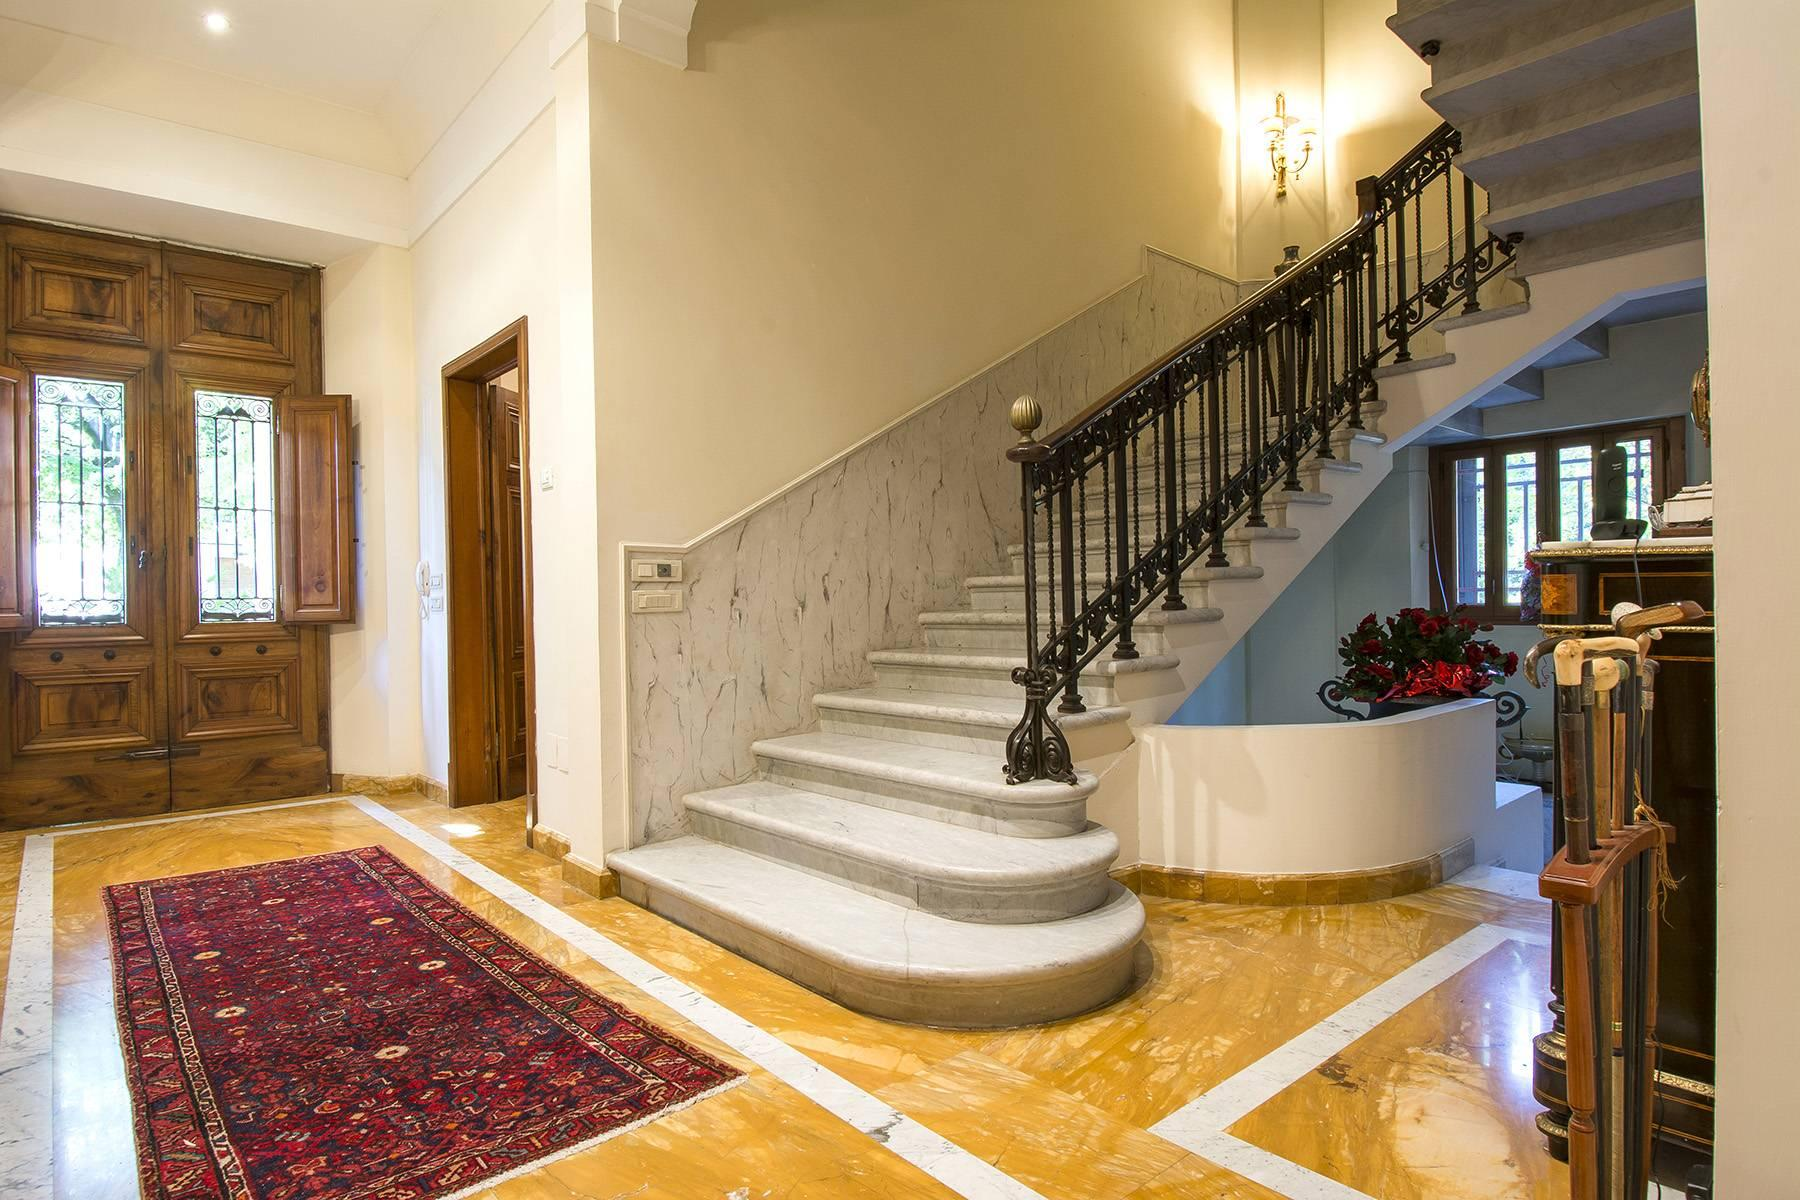 Luxury Art Nouveau Villa in the heart of Montecatini Terme - 13